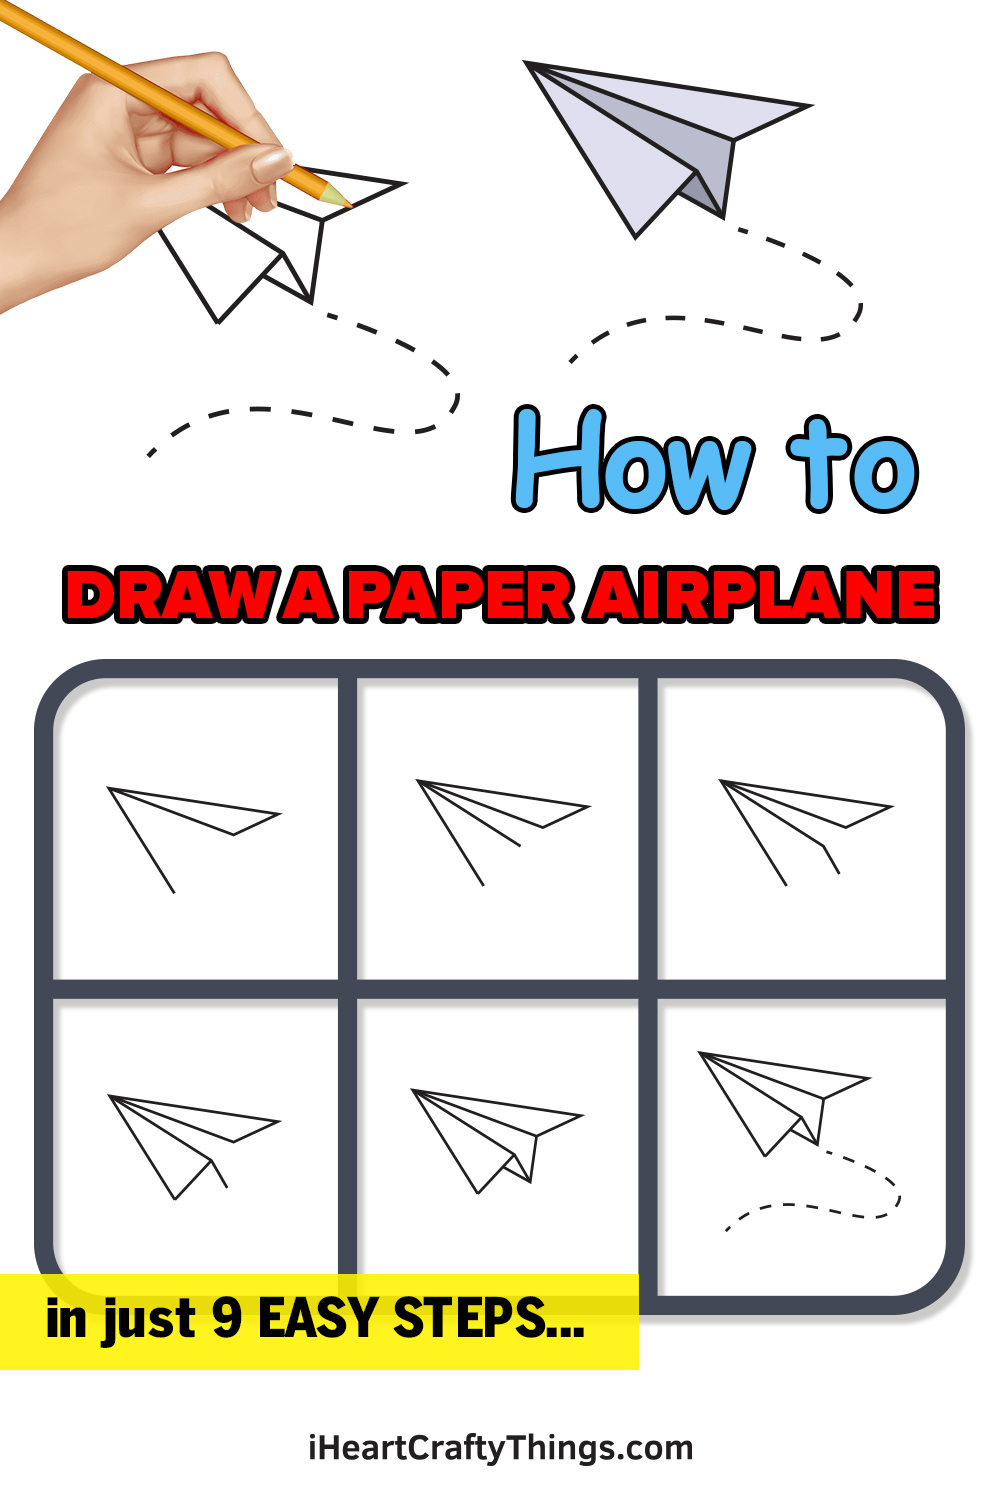 how to draw a paper airplane in 9 easy steps